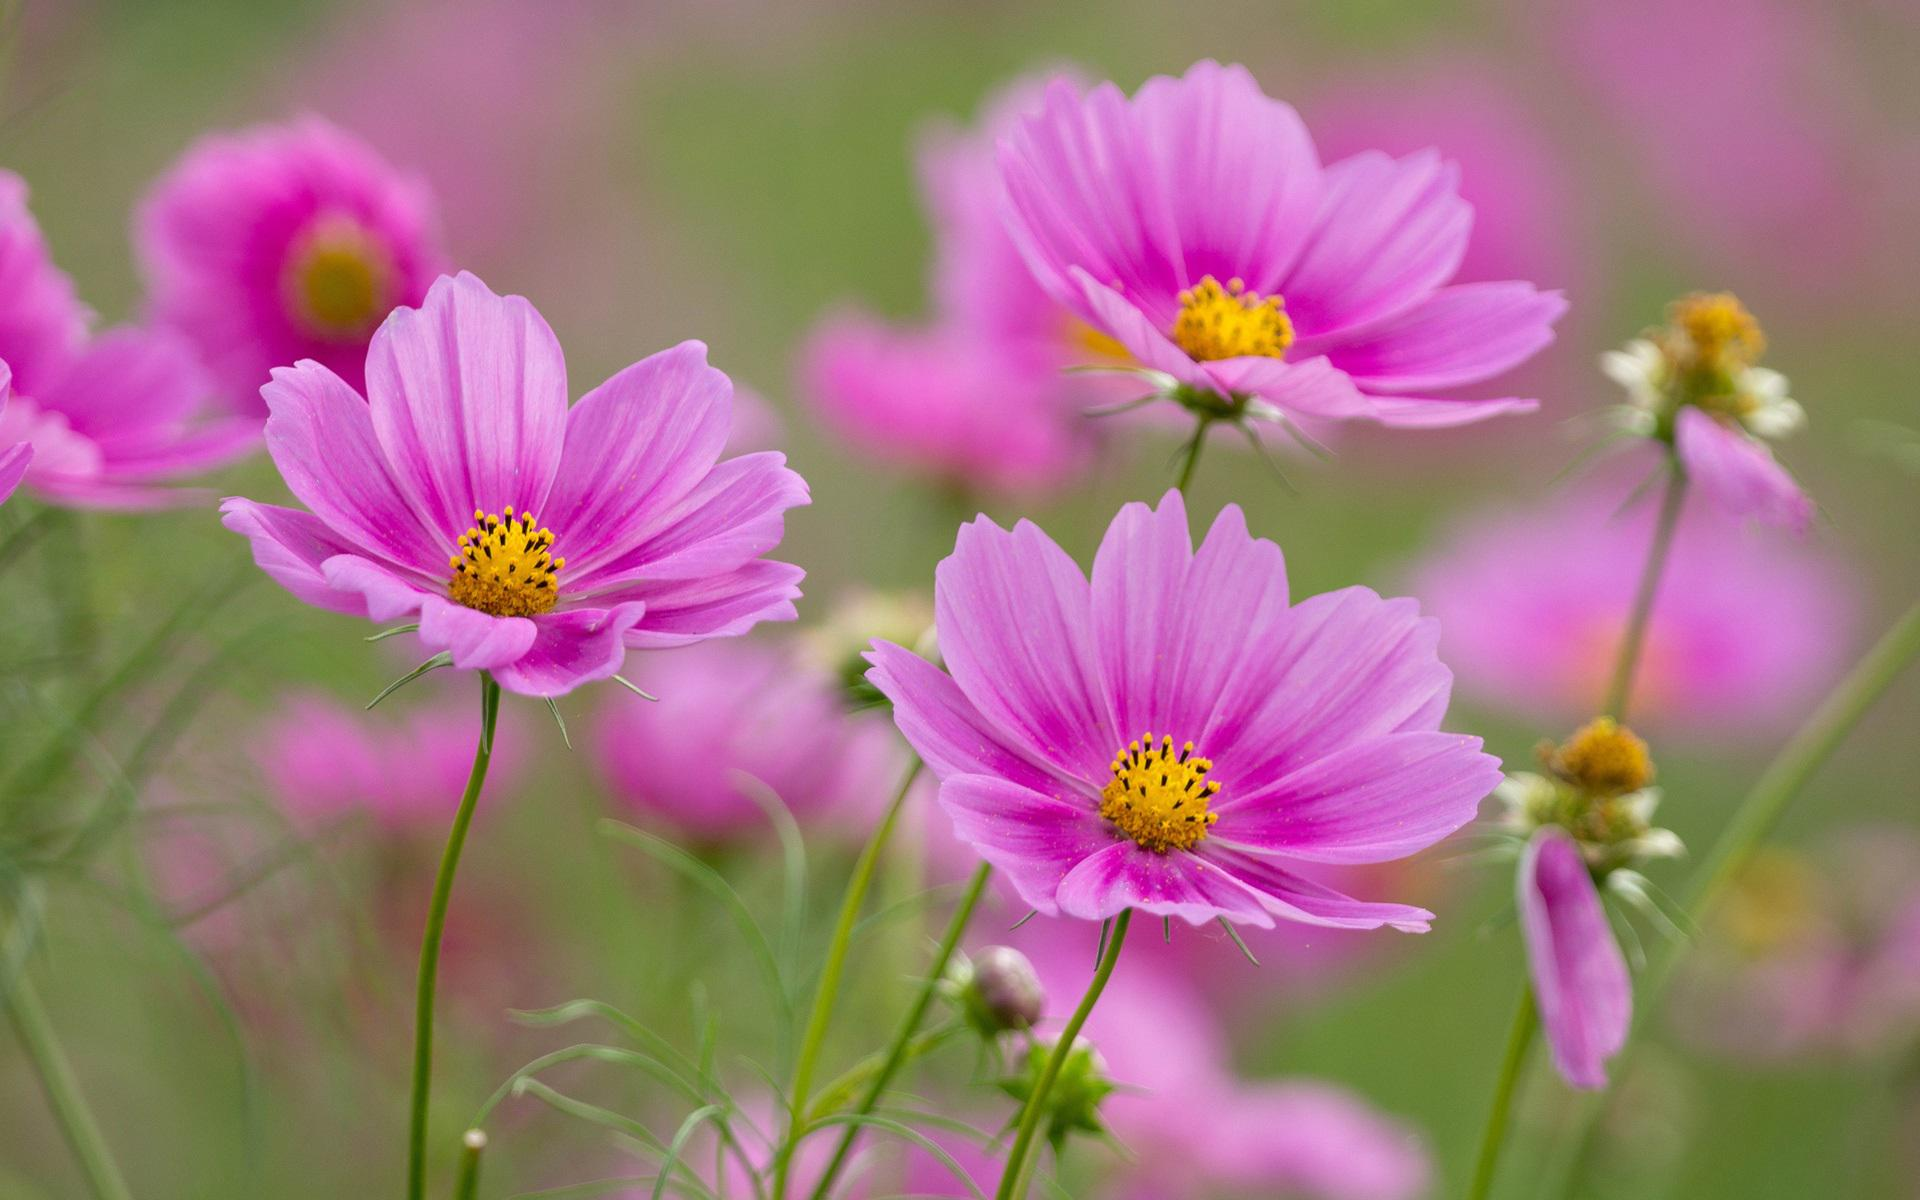 pink-cosmos-flowers-wallpaper-1.jpg